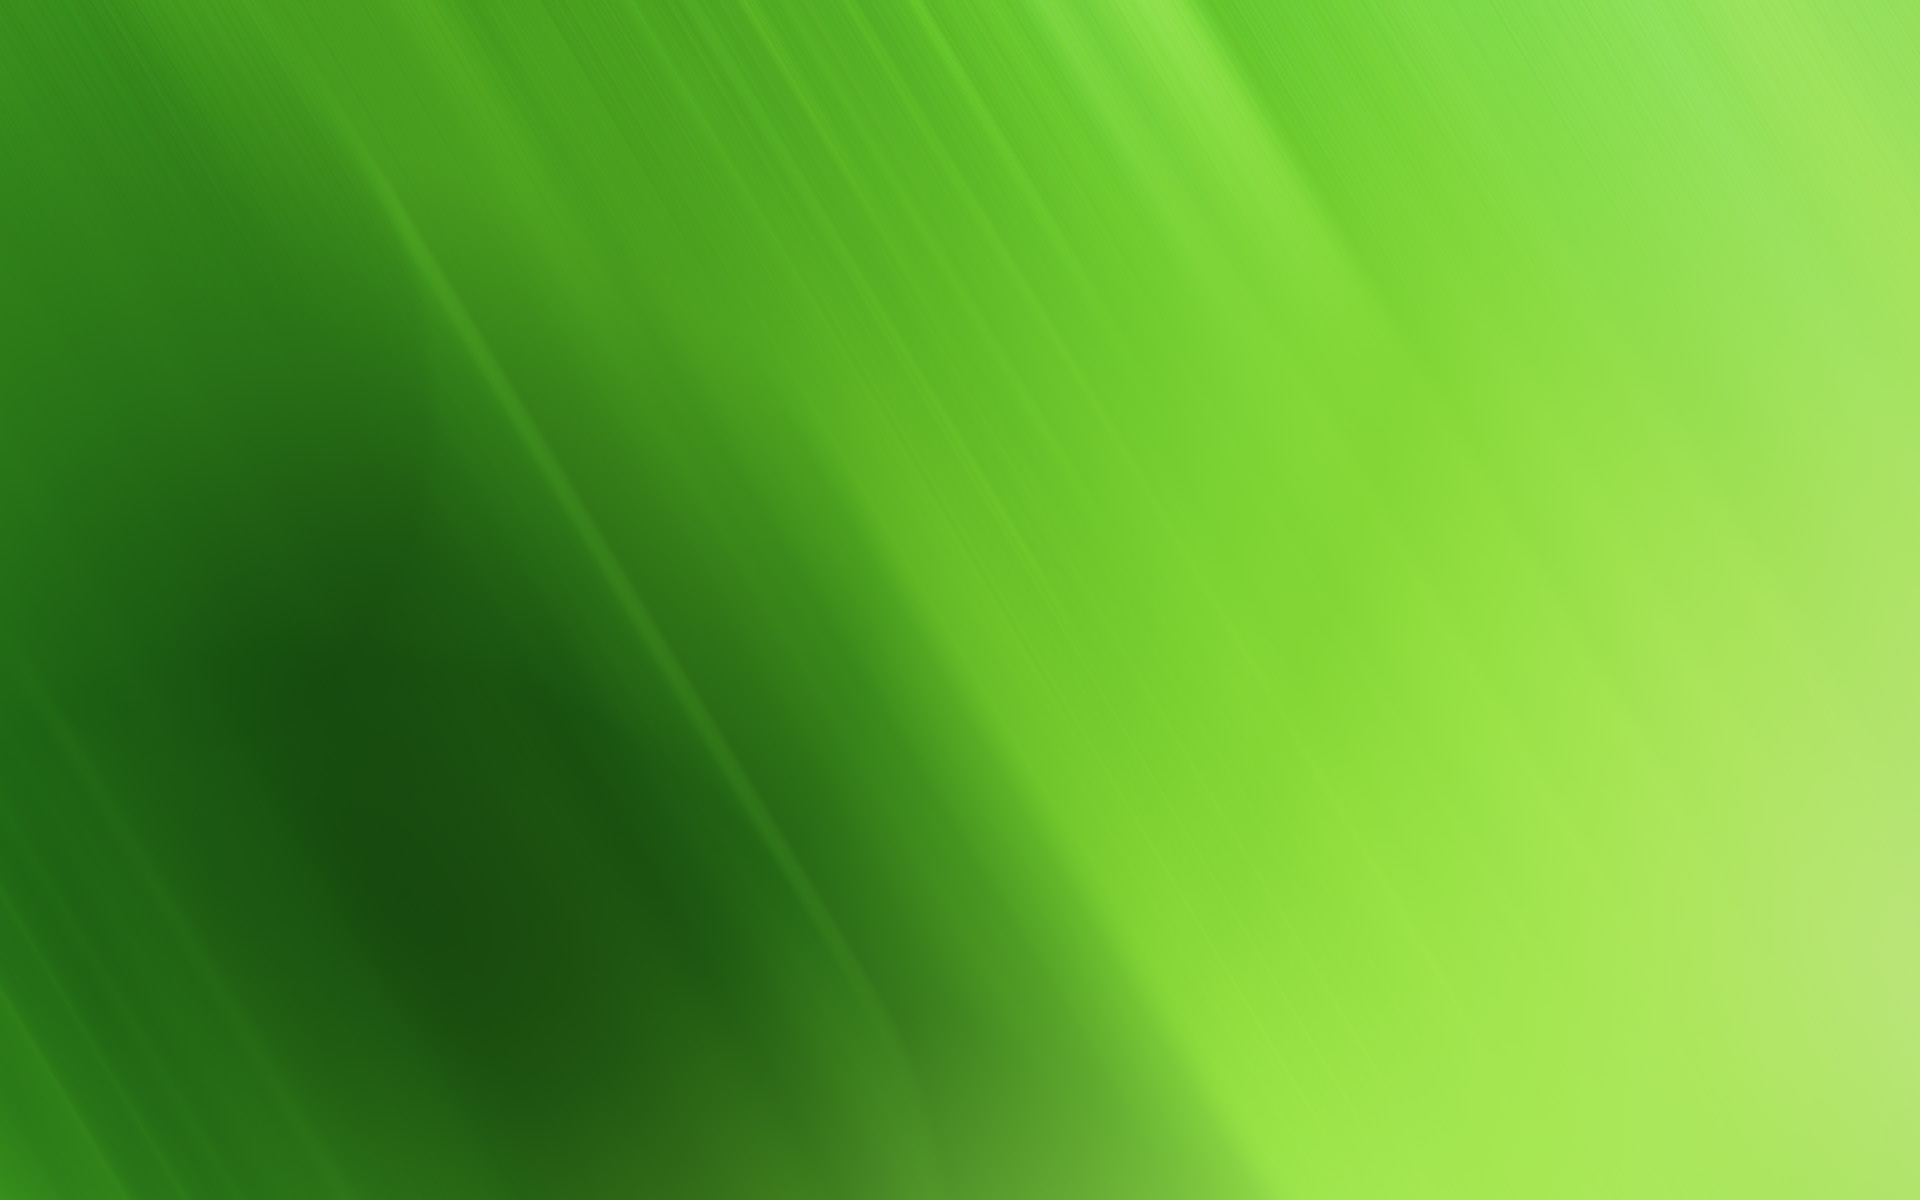 Abstract Desktop Wallpaper Green 83 Fijak Gmbh